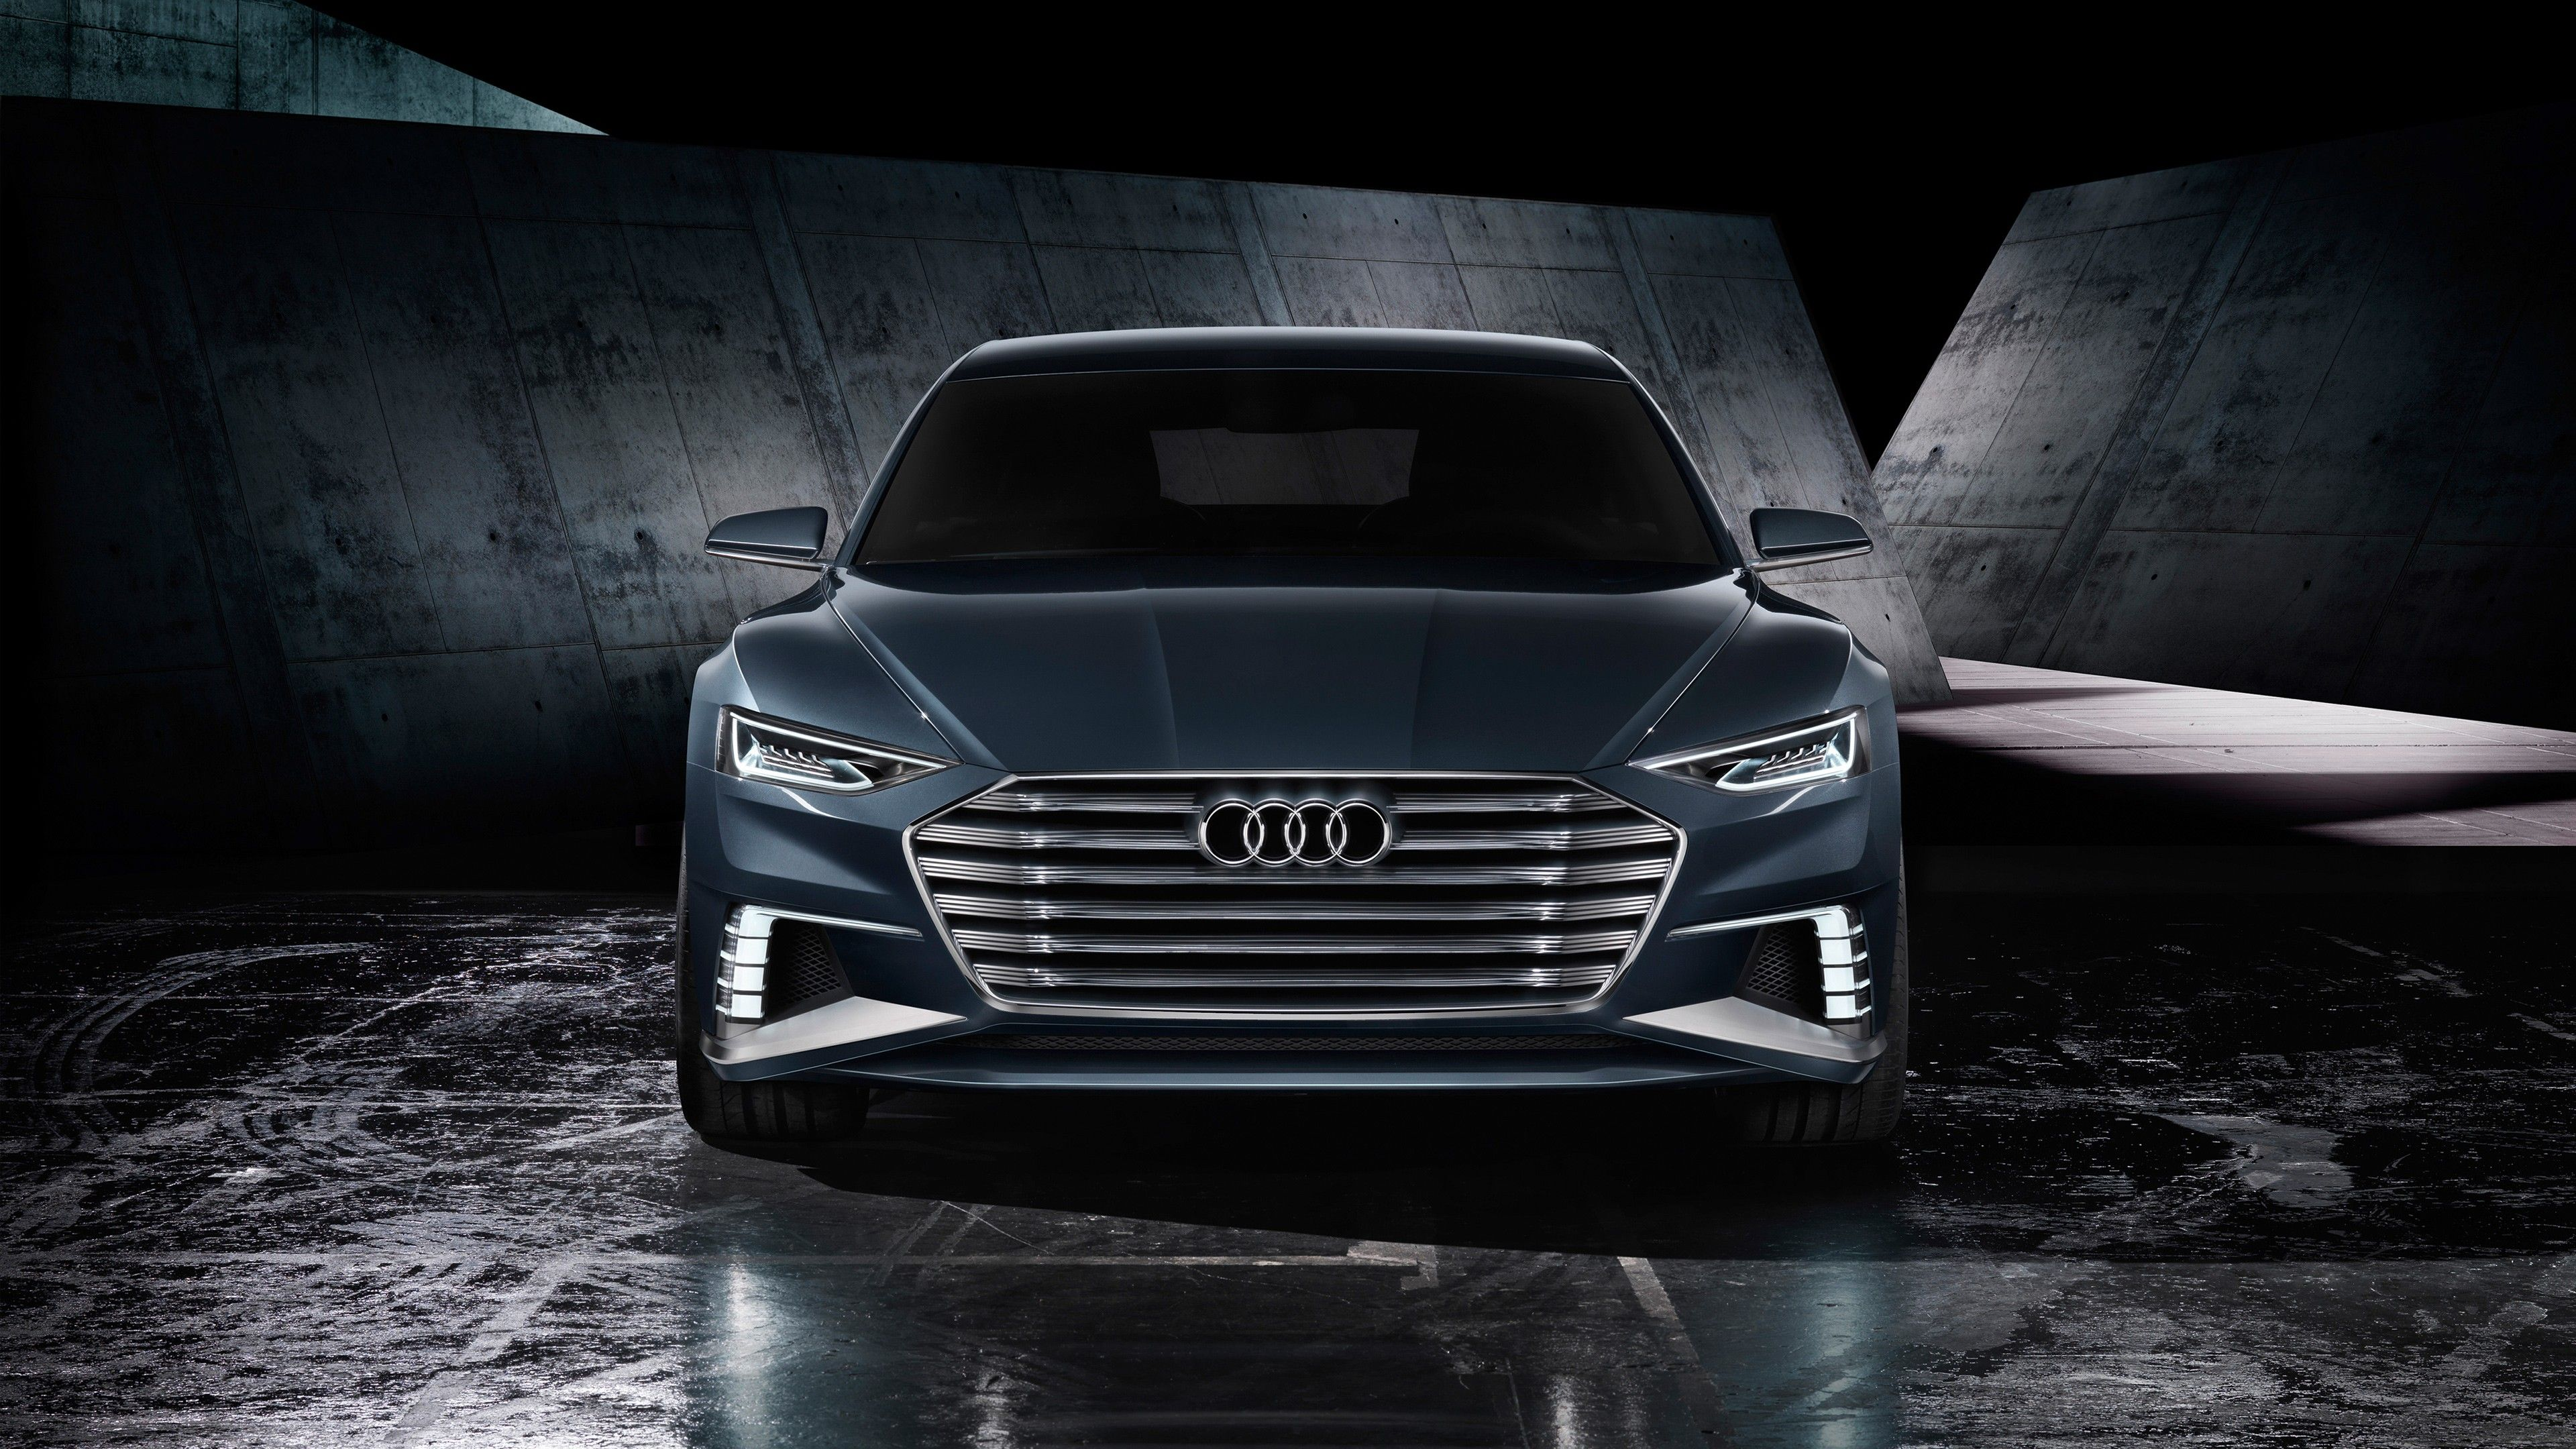 2018 Audi A8 4K Wallpapers | HD Wallpapers | ID #19646